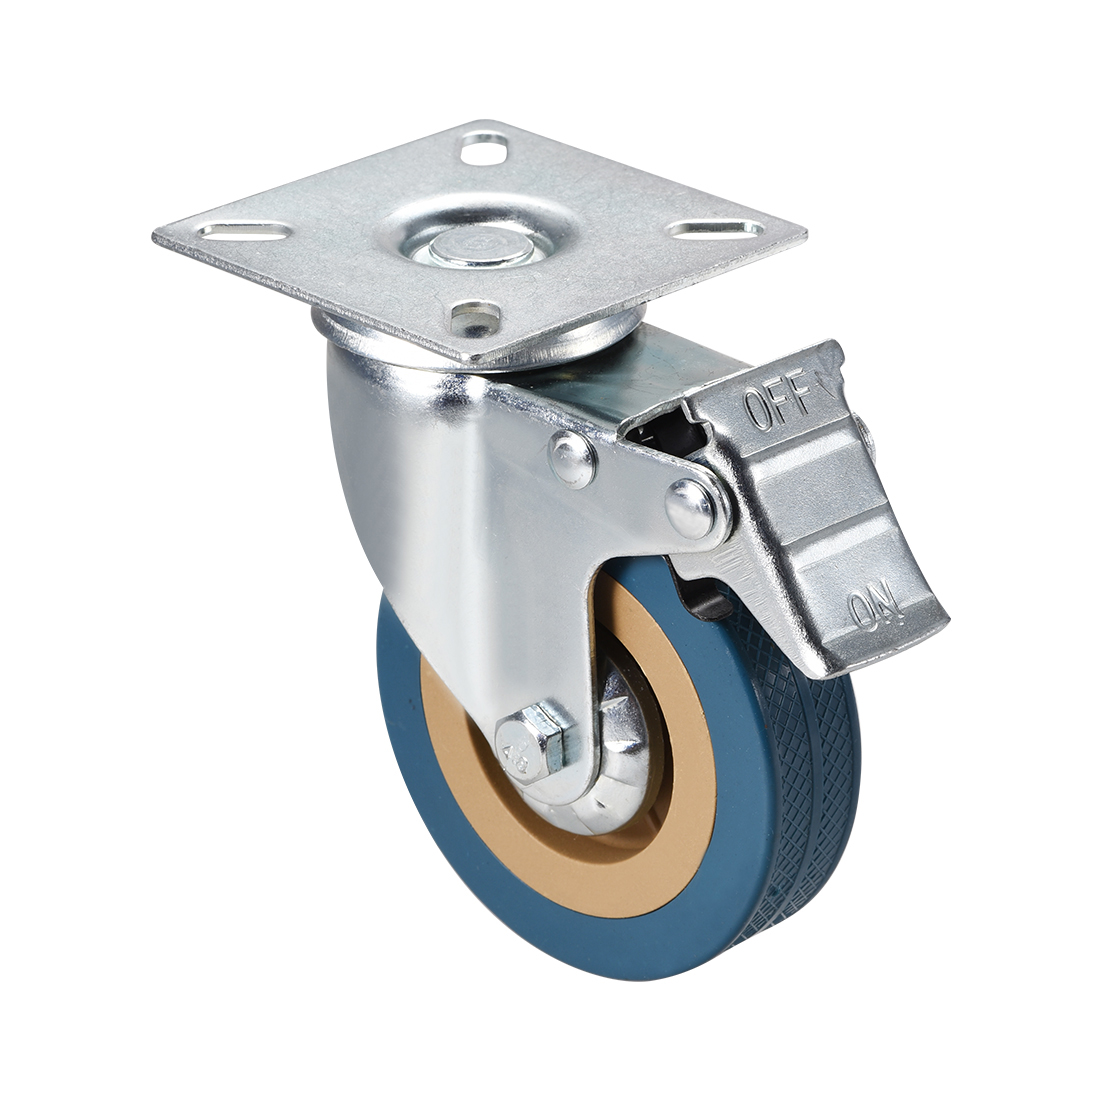 Uxcell 1/2/4pcs Swivel Caster Wheels 2/3/4 Inch PVC Wheel Top Plate Mounted With Brake 44/88/100lb Capacity Quiet Rolling